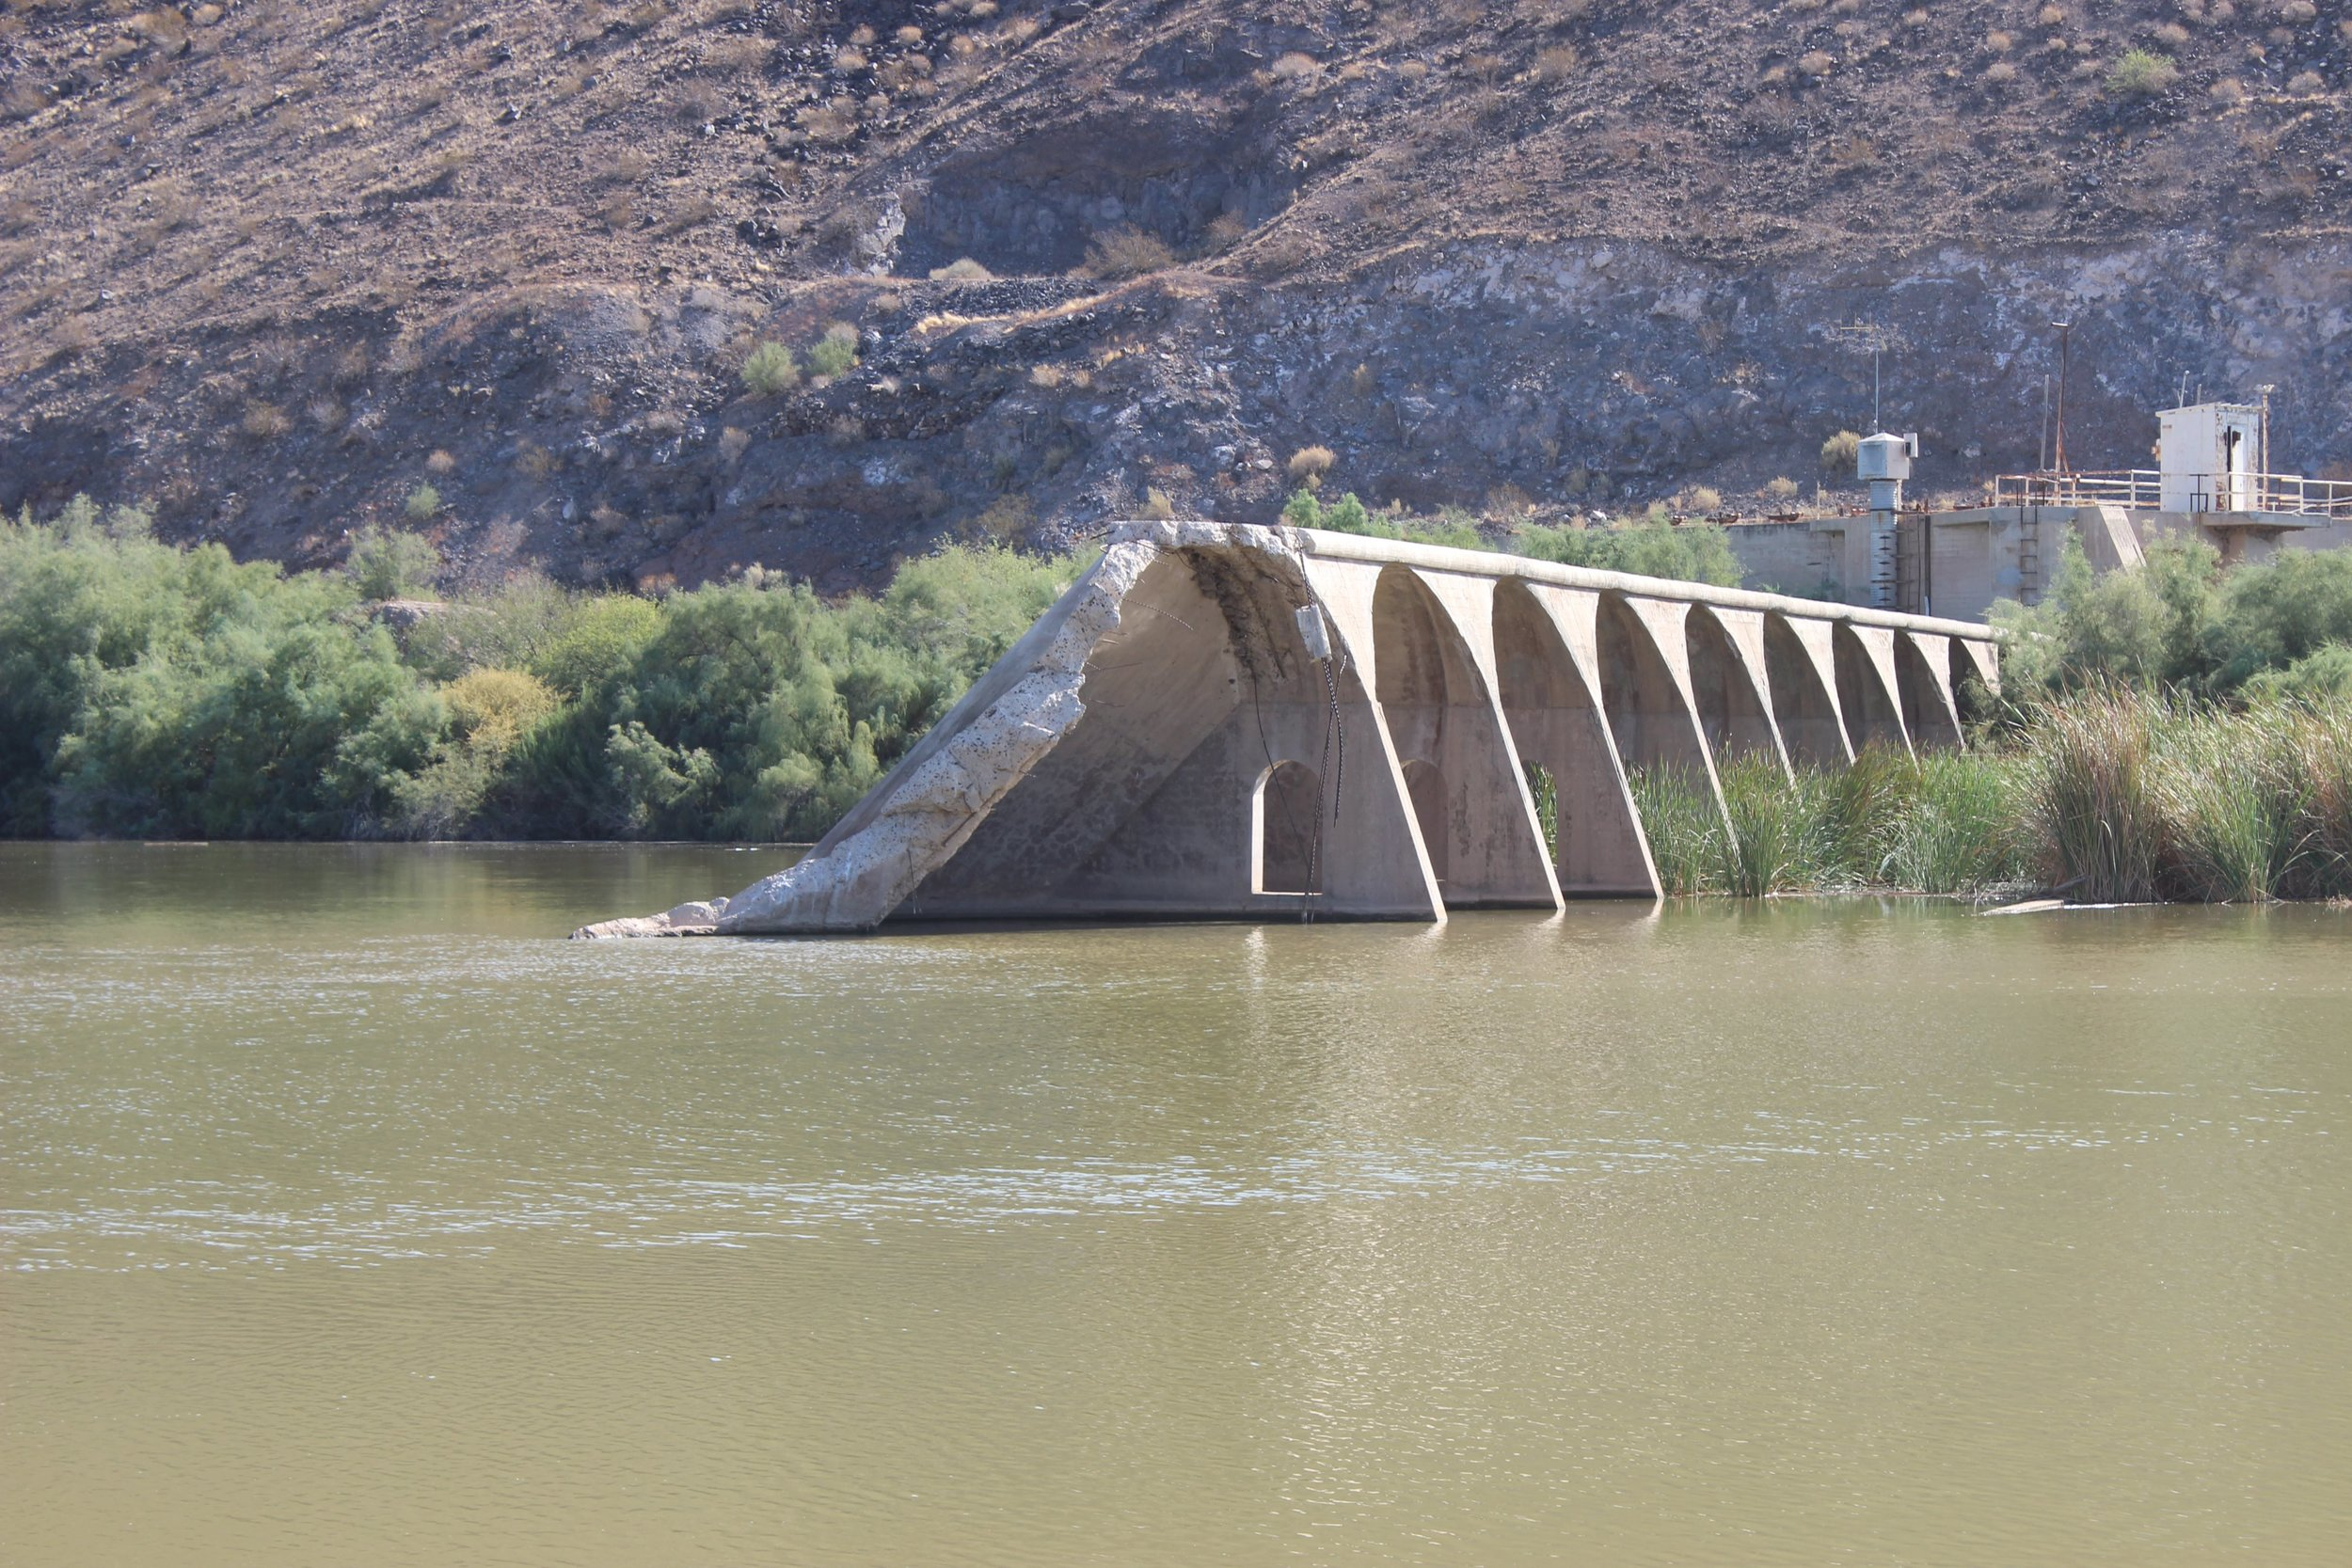 The collapsed portion of Gillespie Dam on the east bank of the Gila River